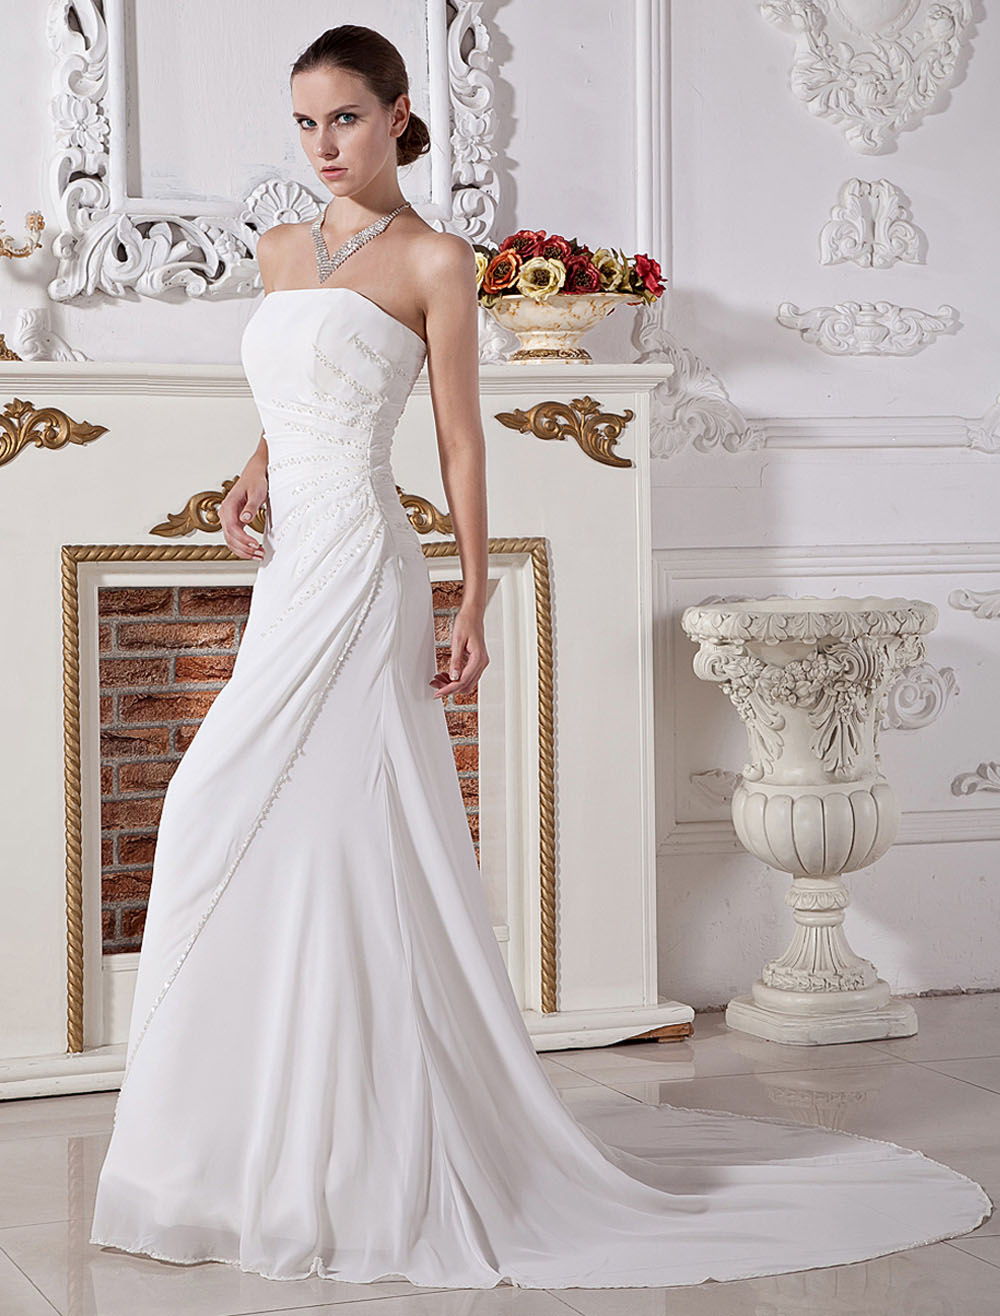 White Wedding Gown Strapless Ruched Sash Chiffon Wedding Dress